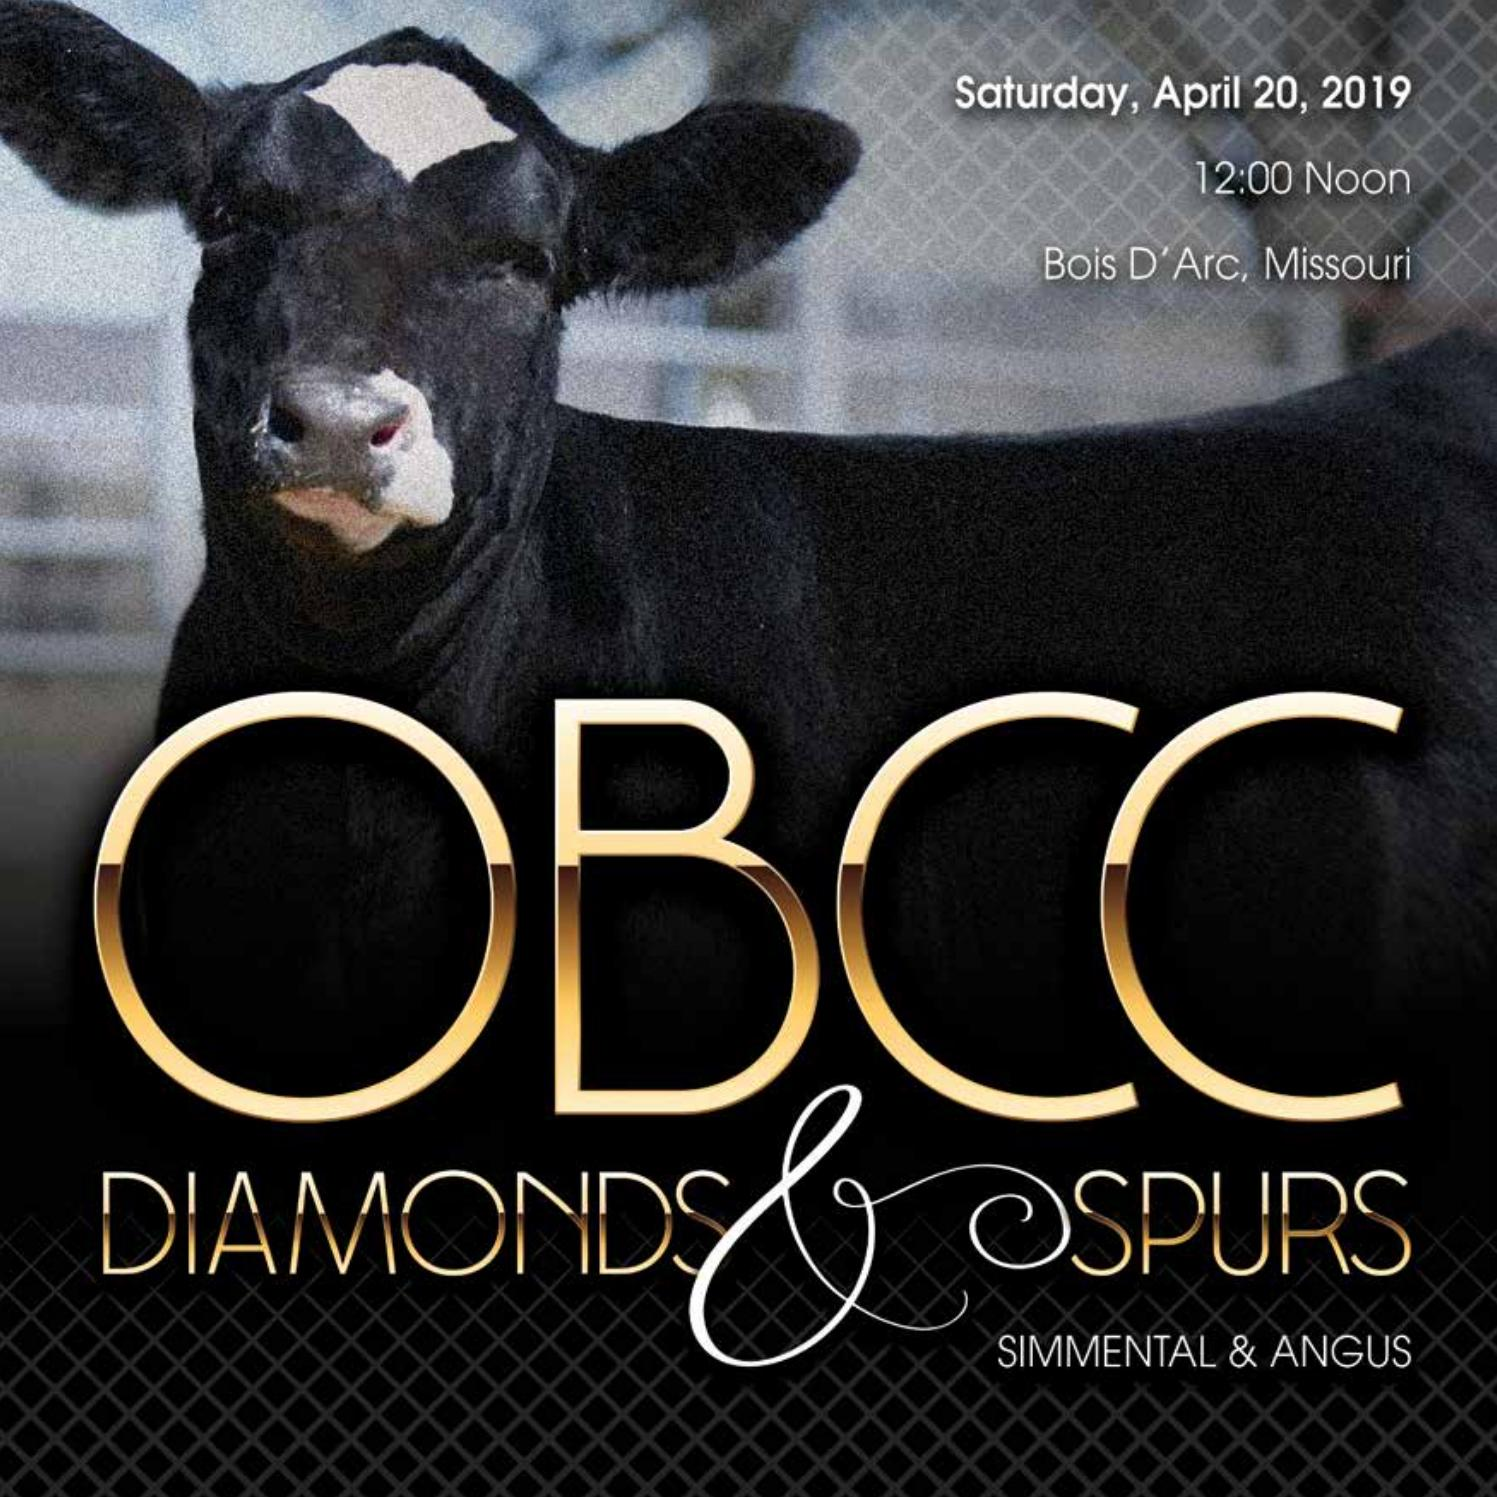 2019 OBCC Diamonds And Spurs Sale by Eberspacher Enterprises - issuu